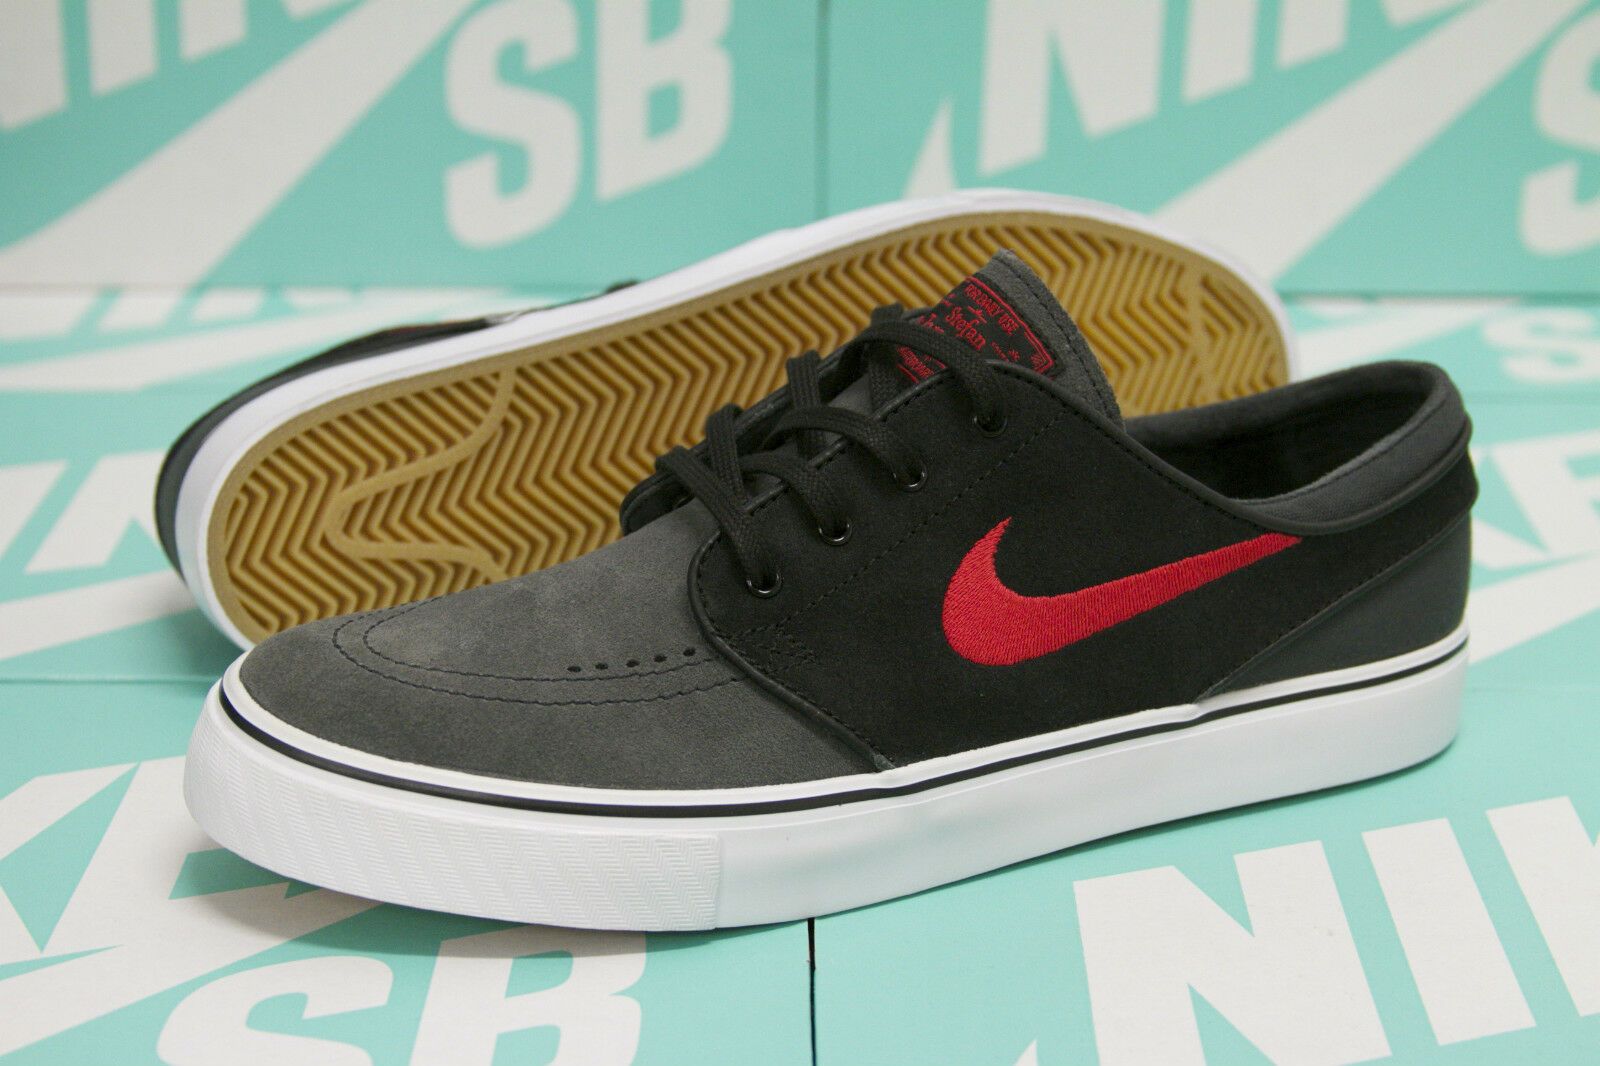 NIKE SB ZOOM STEFAN JANOSKI - ANTHRACITE   UNIVERSITY RED BLACK 333824 062 SZ 12